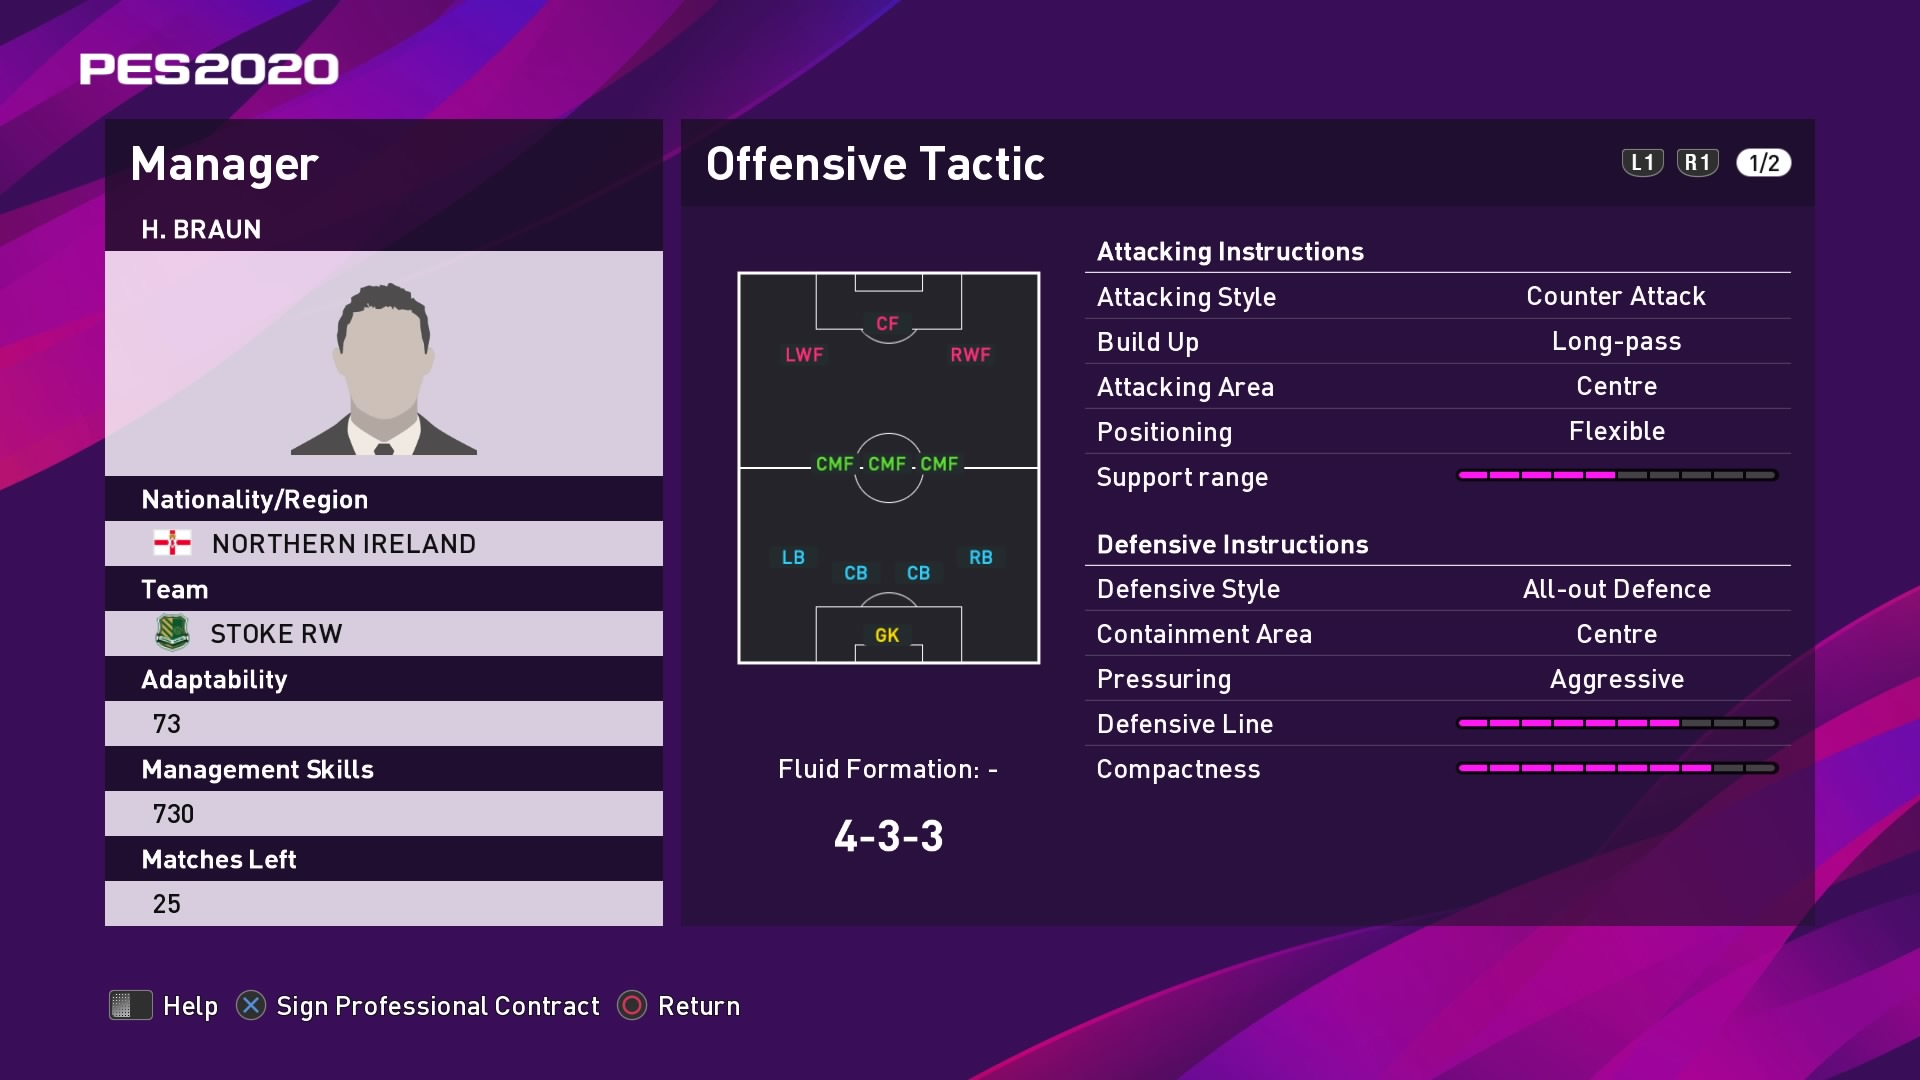 H. Braun (Michael O'Neill) Offensive Tactic in PES 2020 myClub